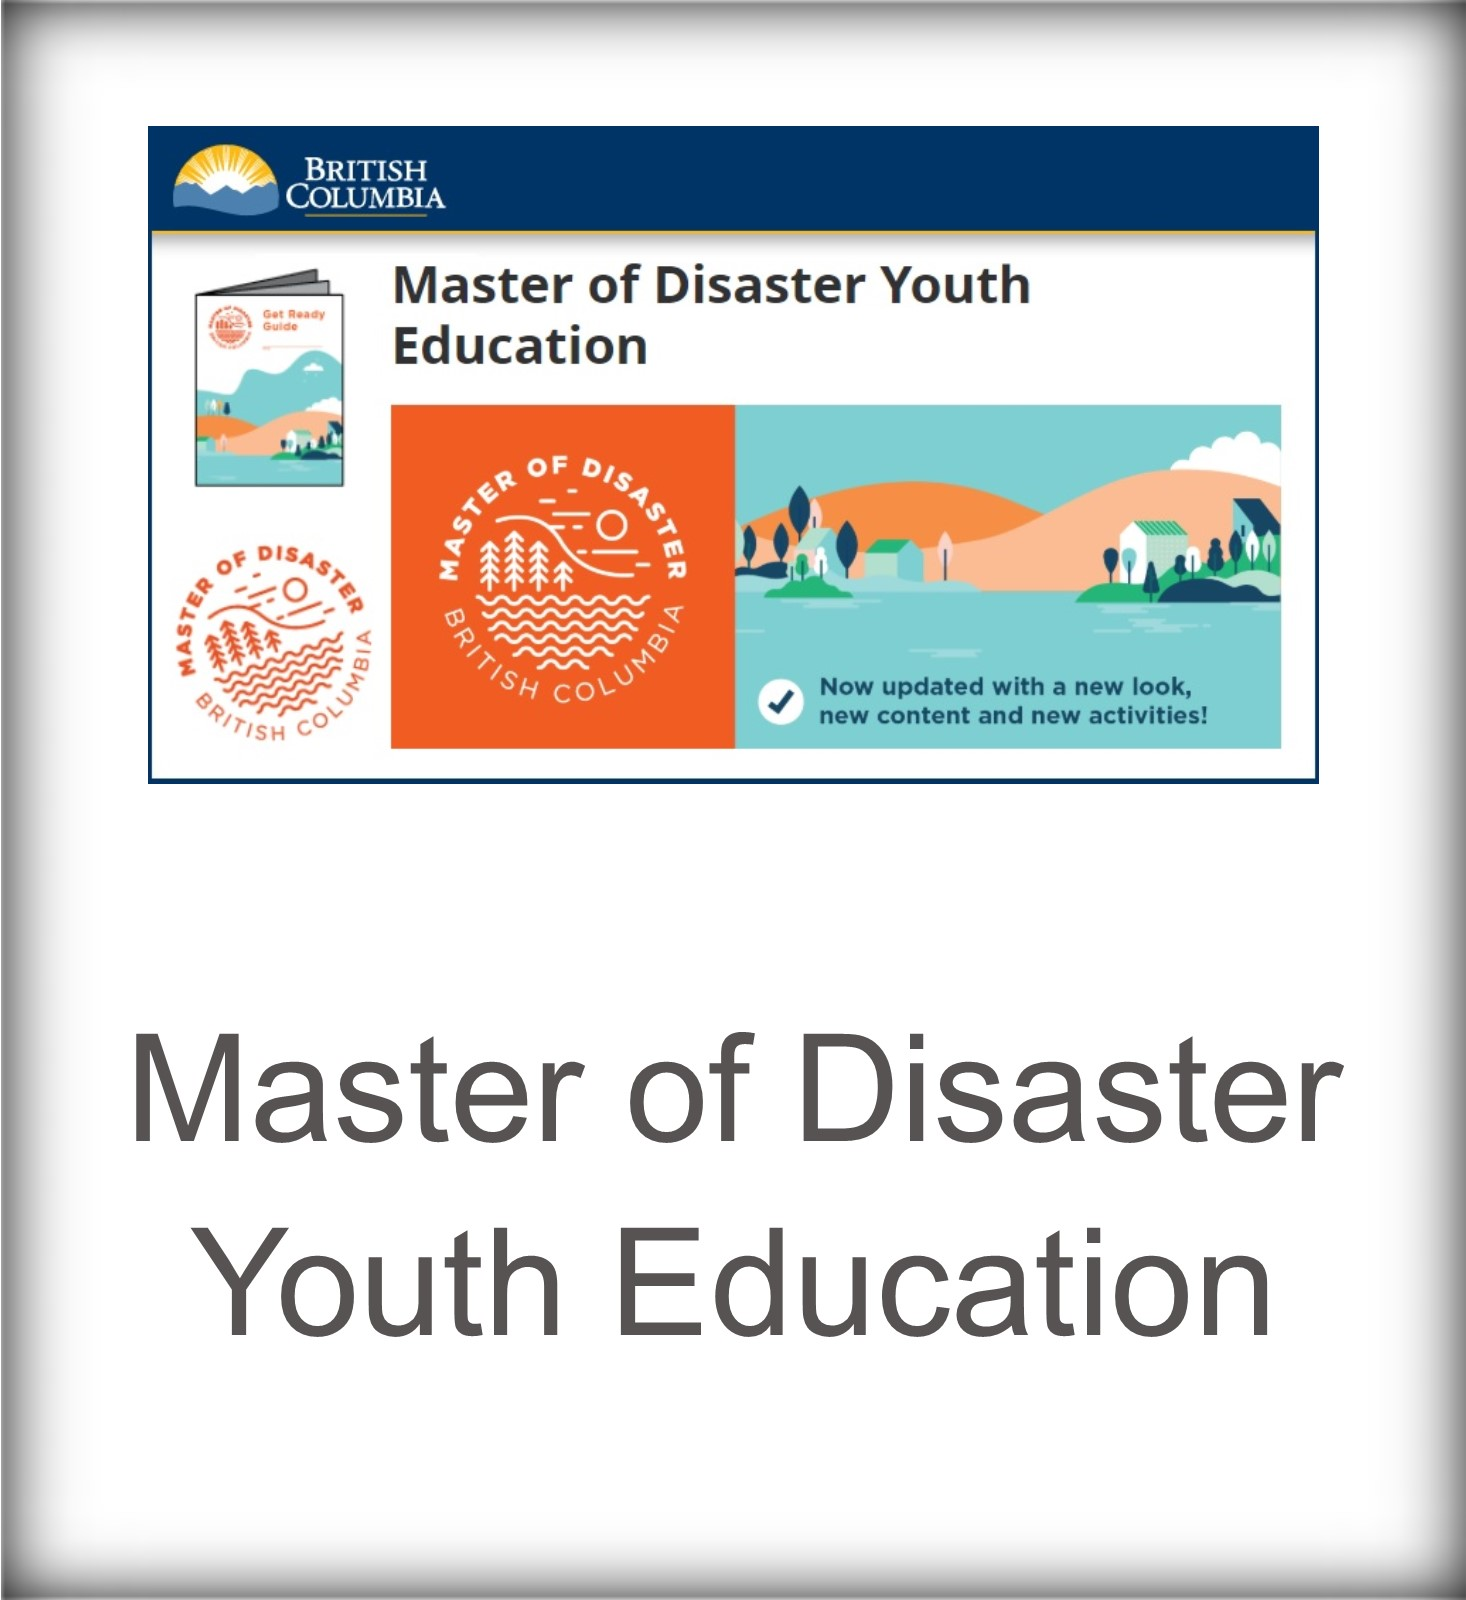 Master of Disaster Youth Education